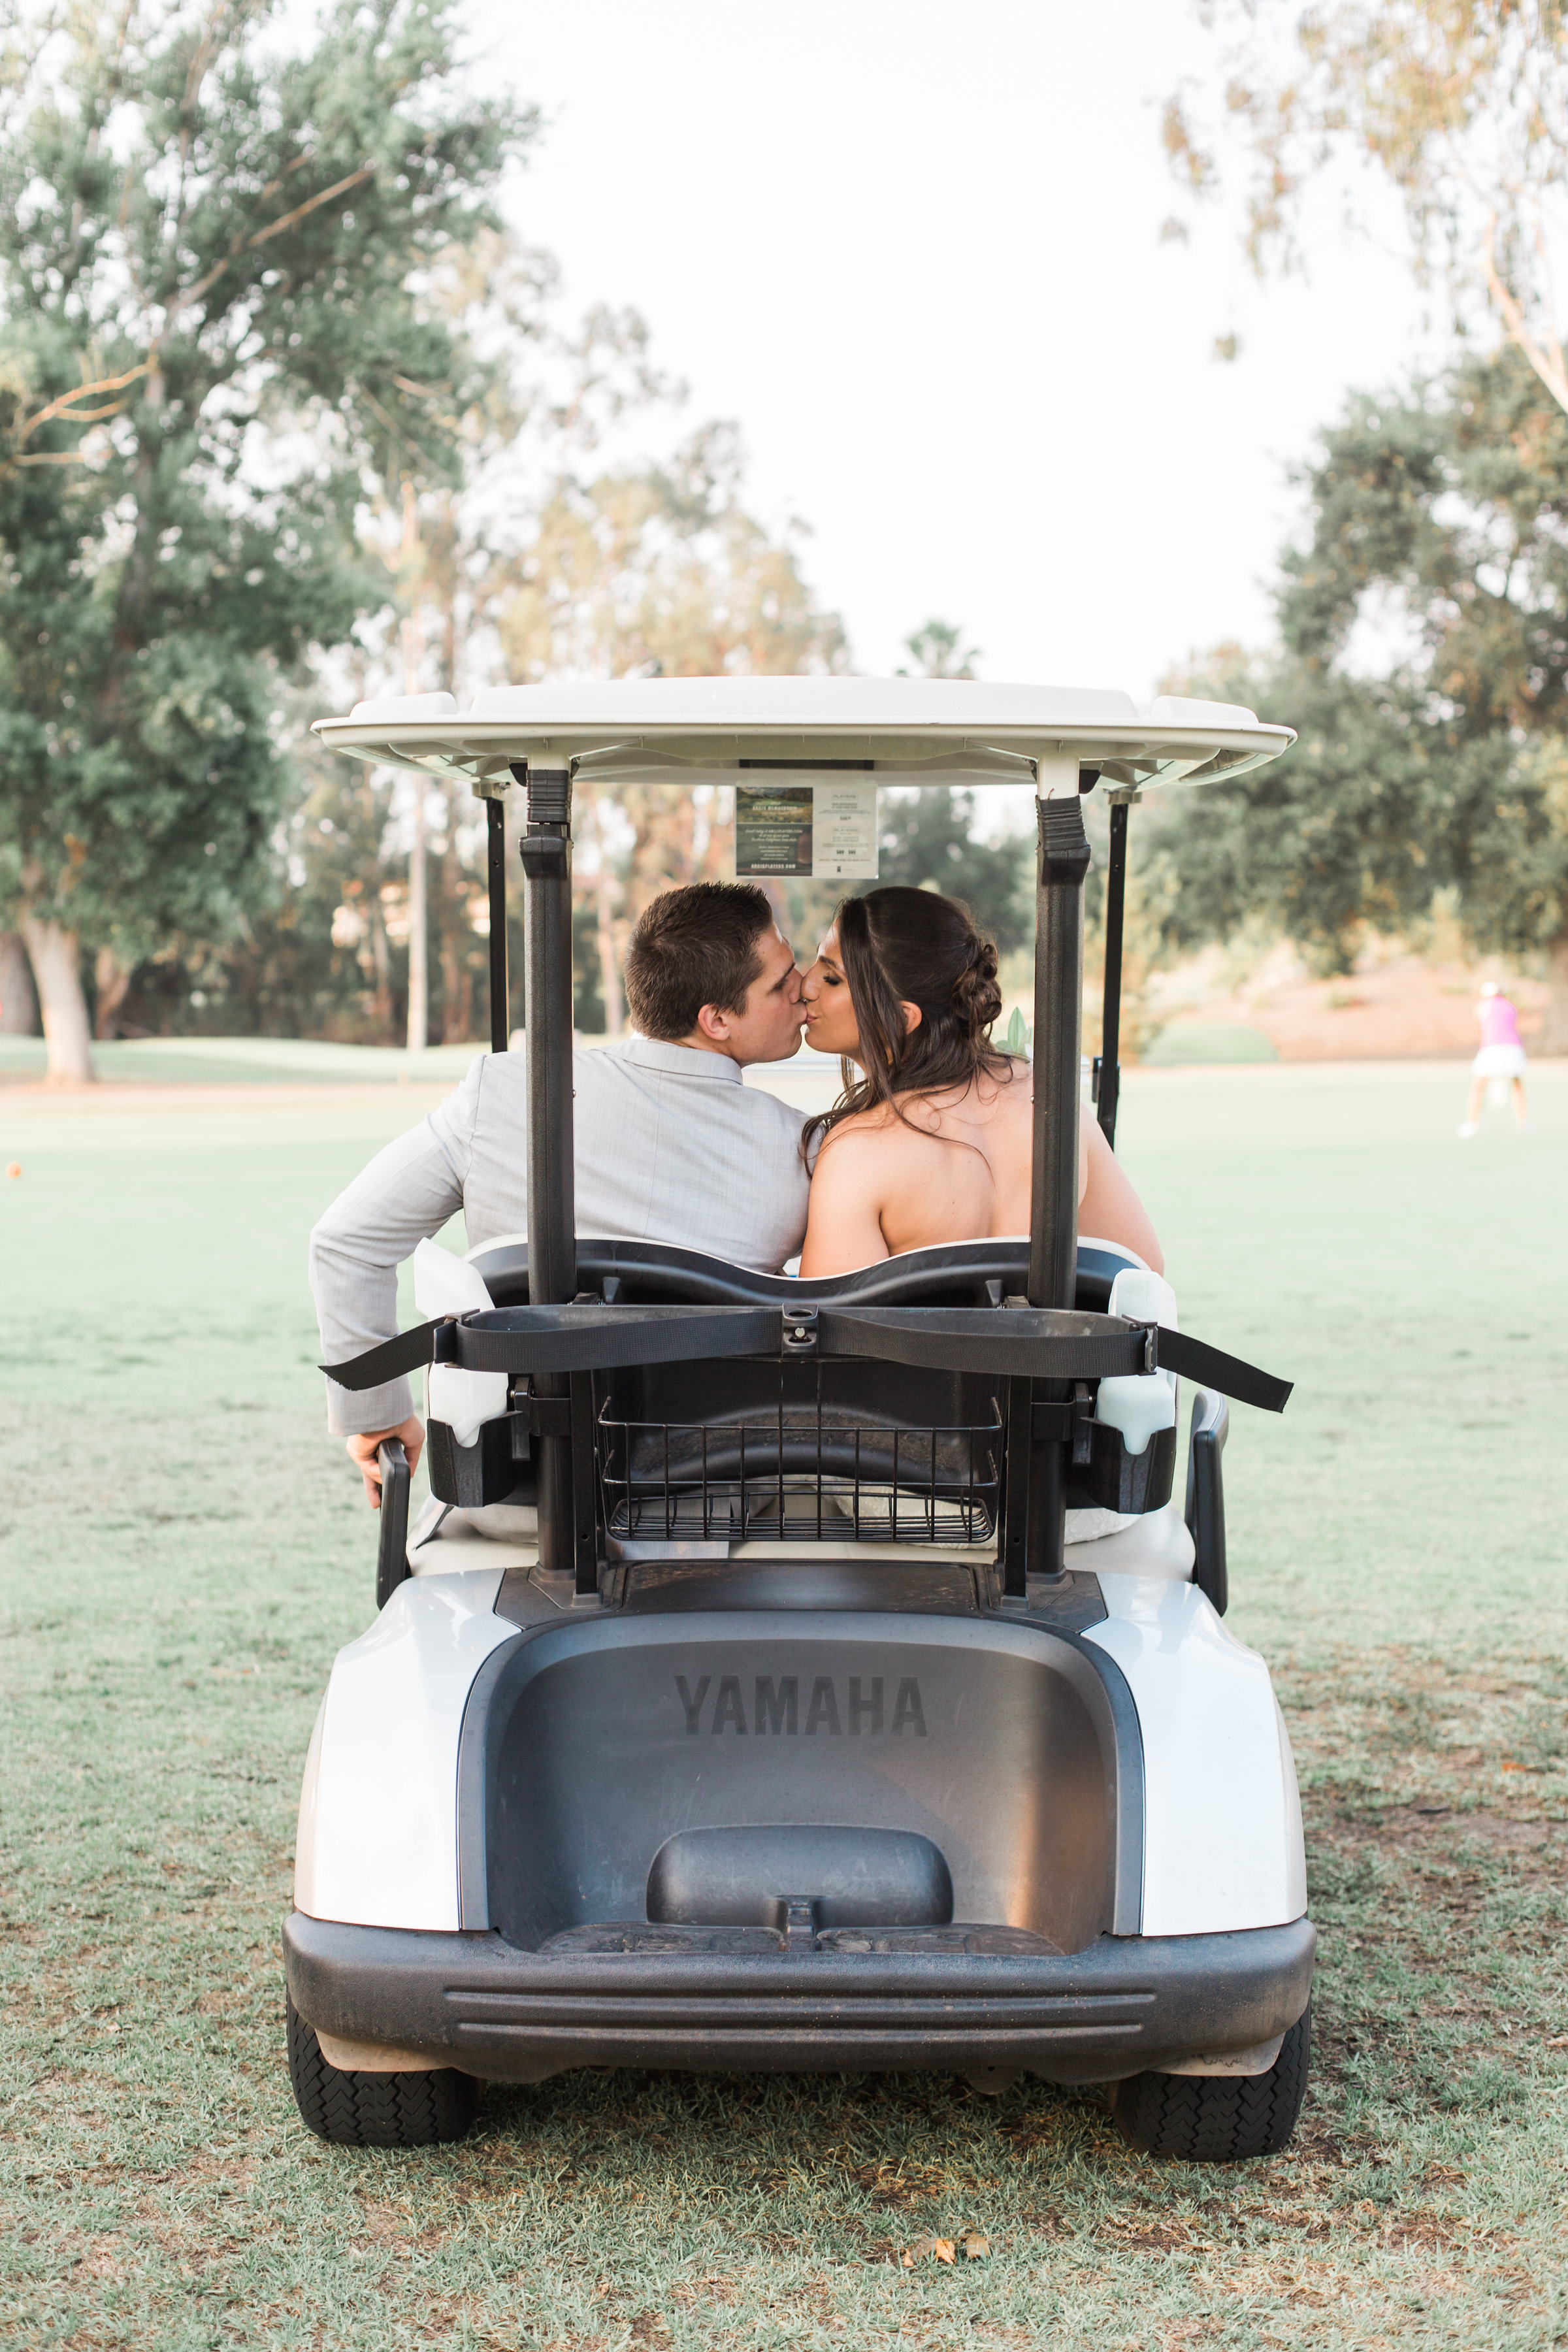 A Los Robles Greens Thousand Oaks California Wedding - The Overwhelmed Bride Wedding Ideas Blog